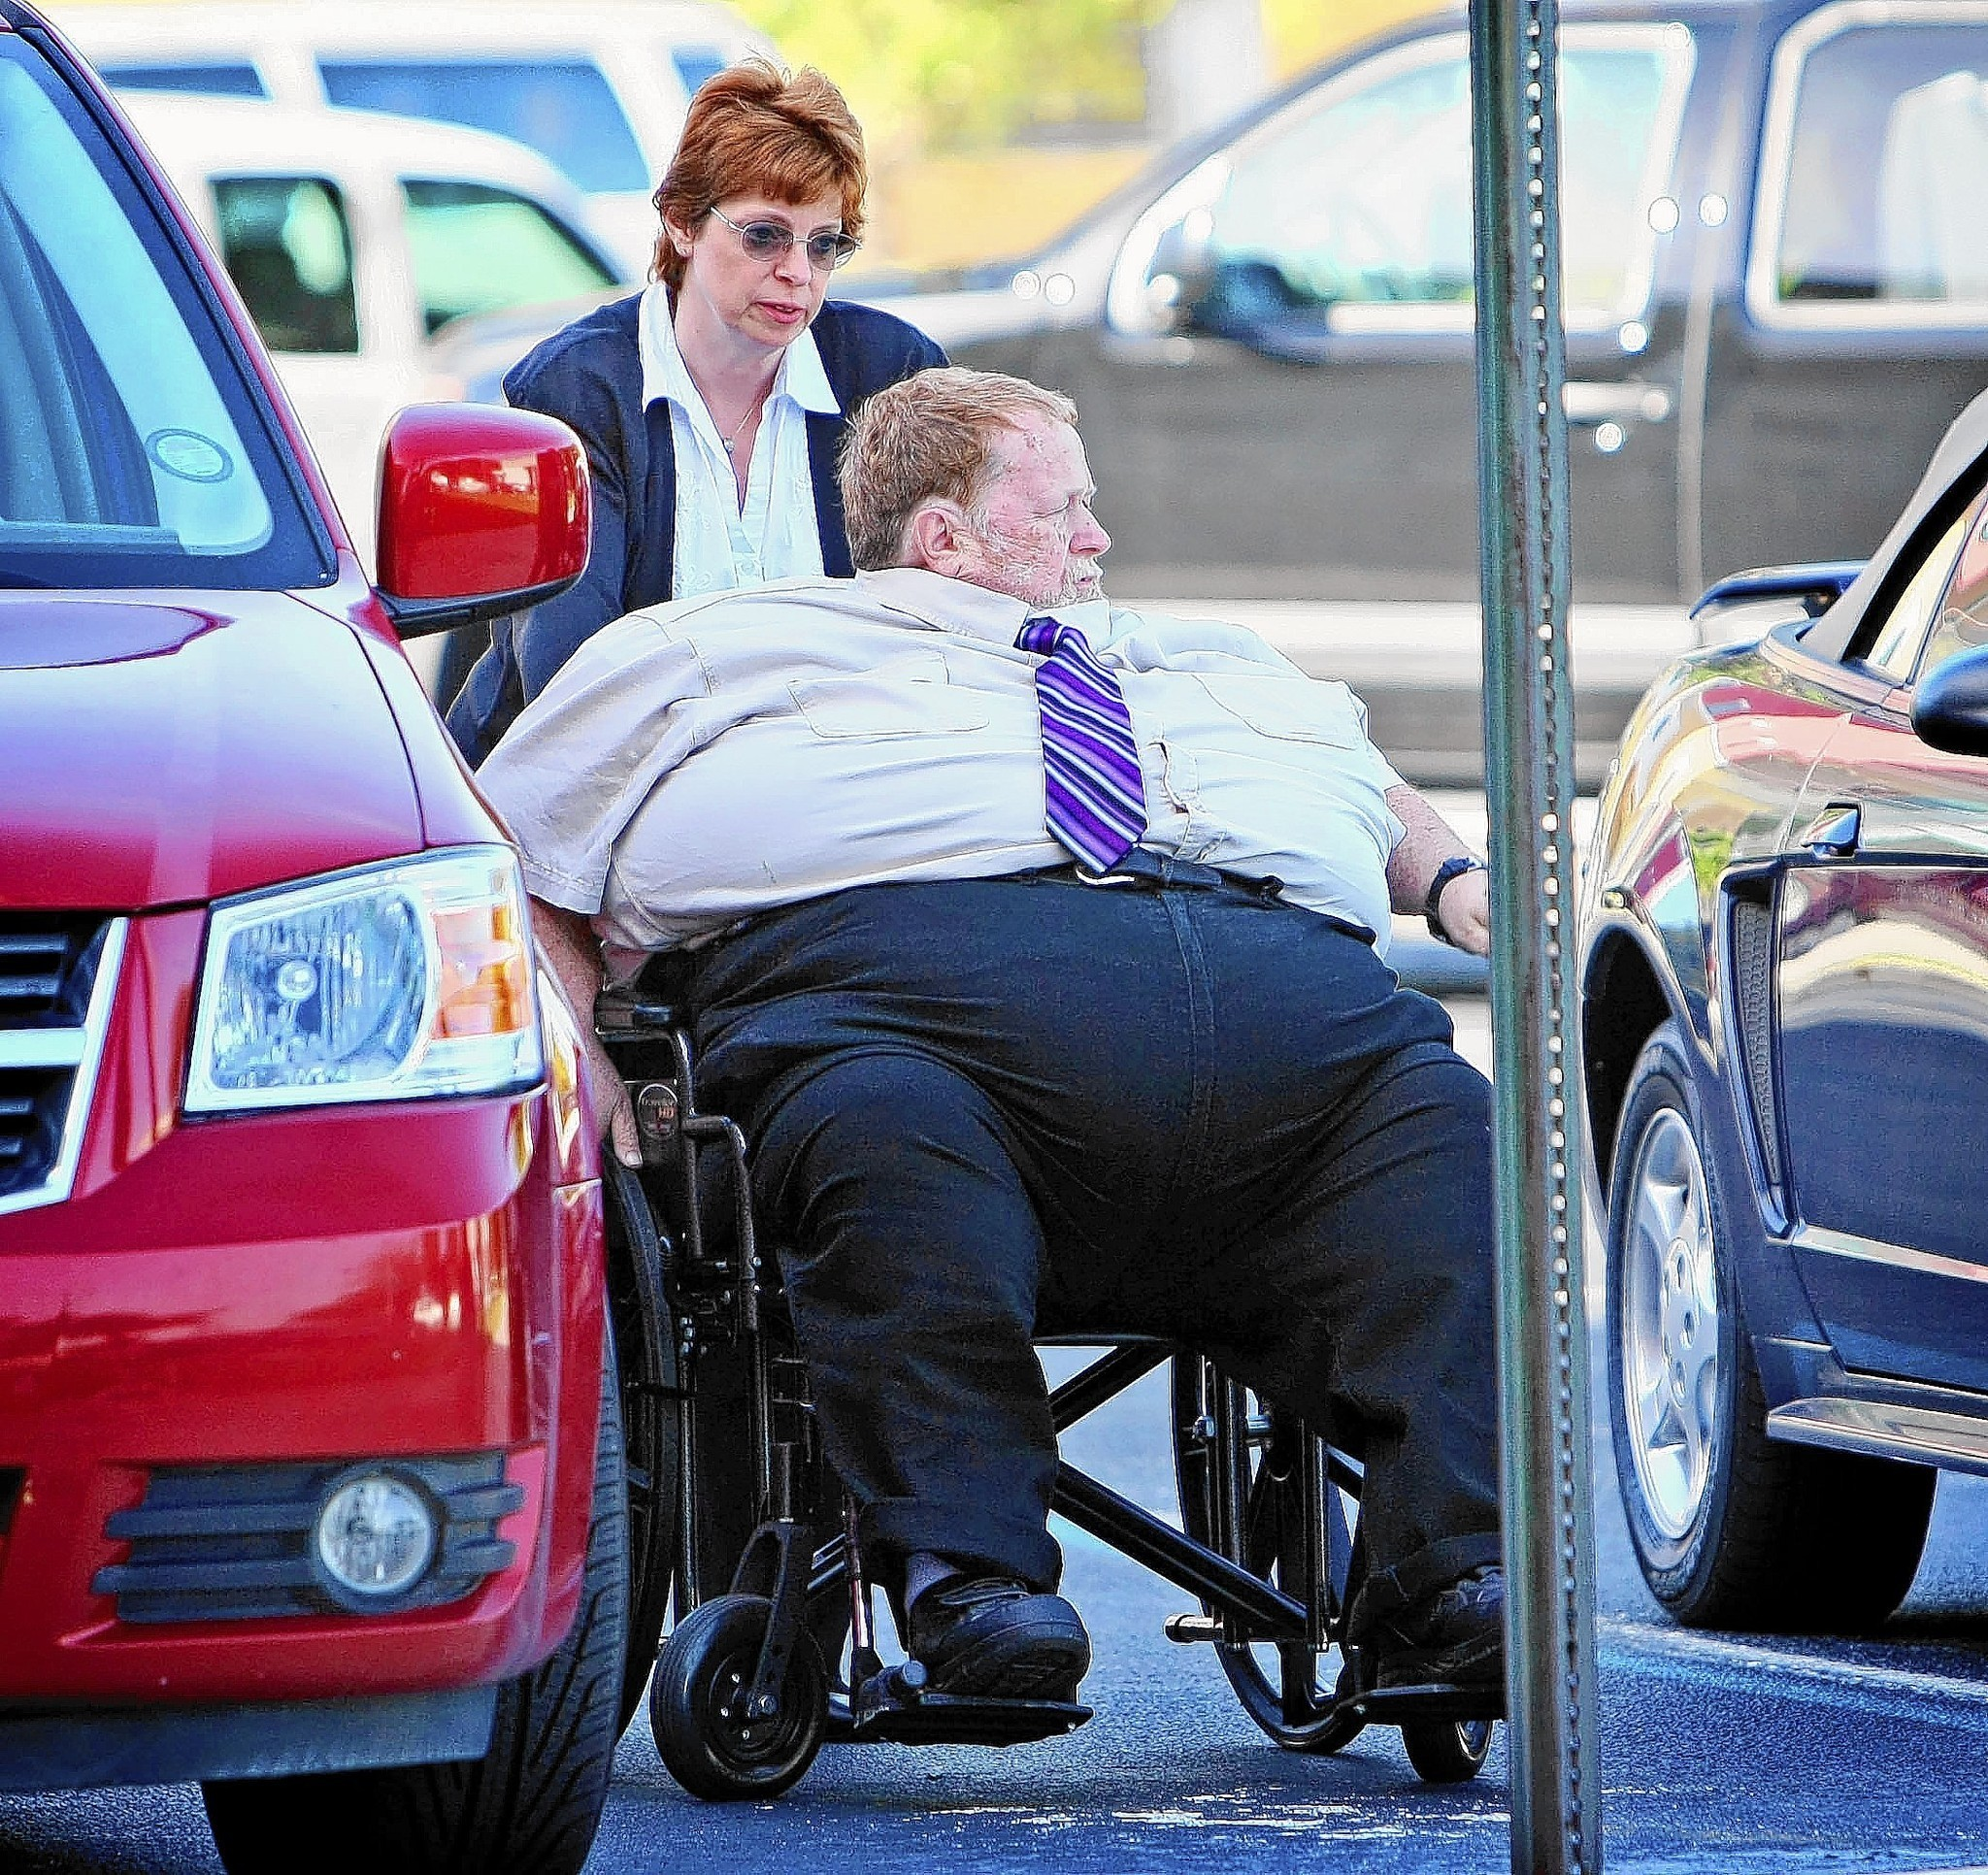 Judge won't free obese man from house arrest